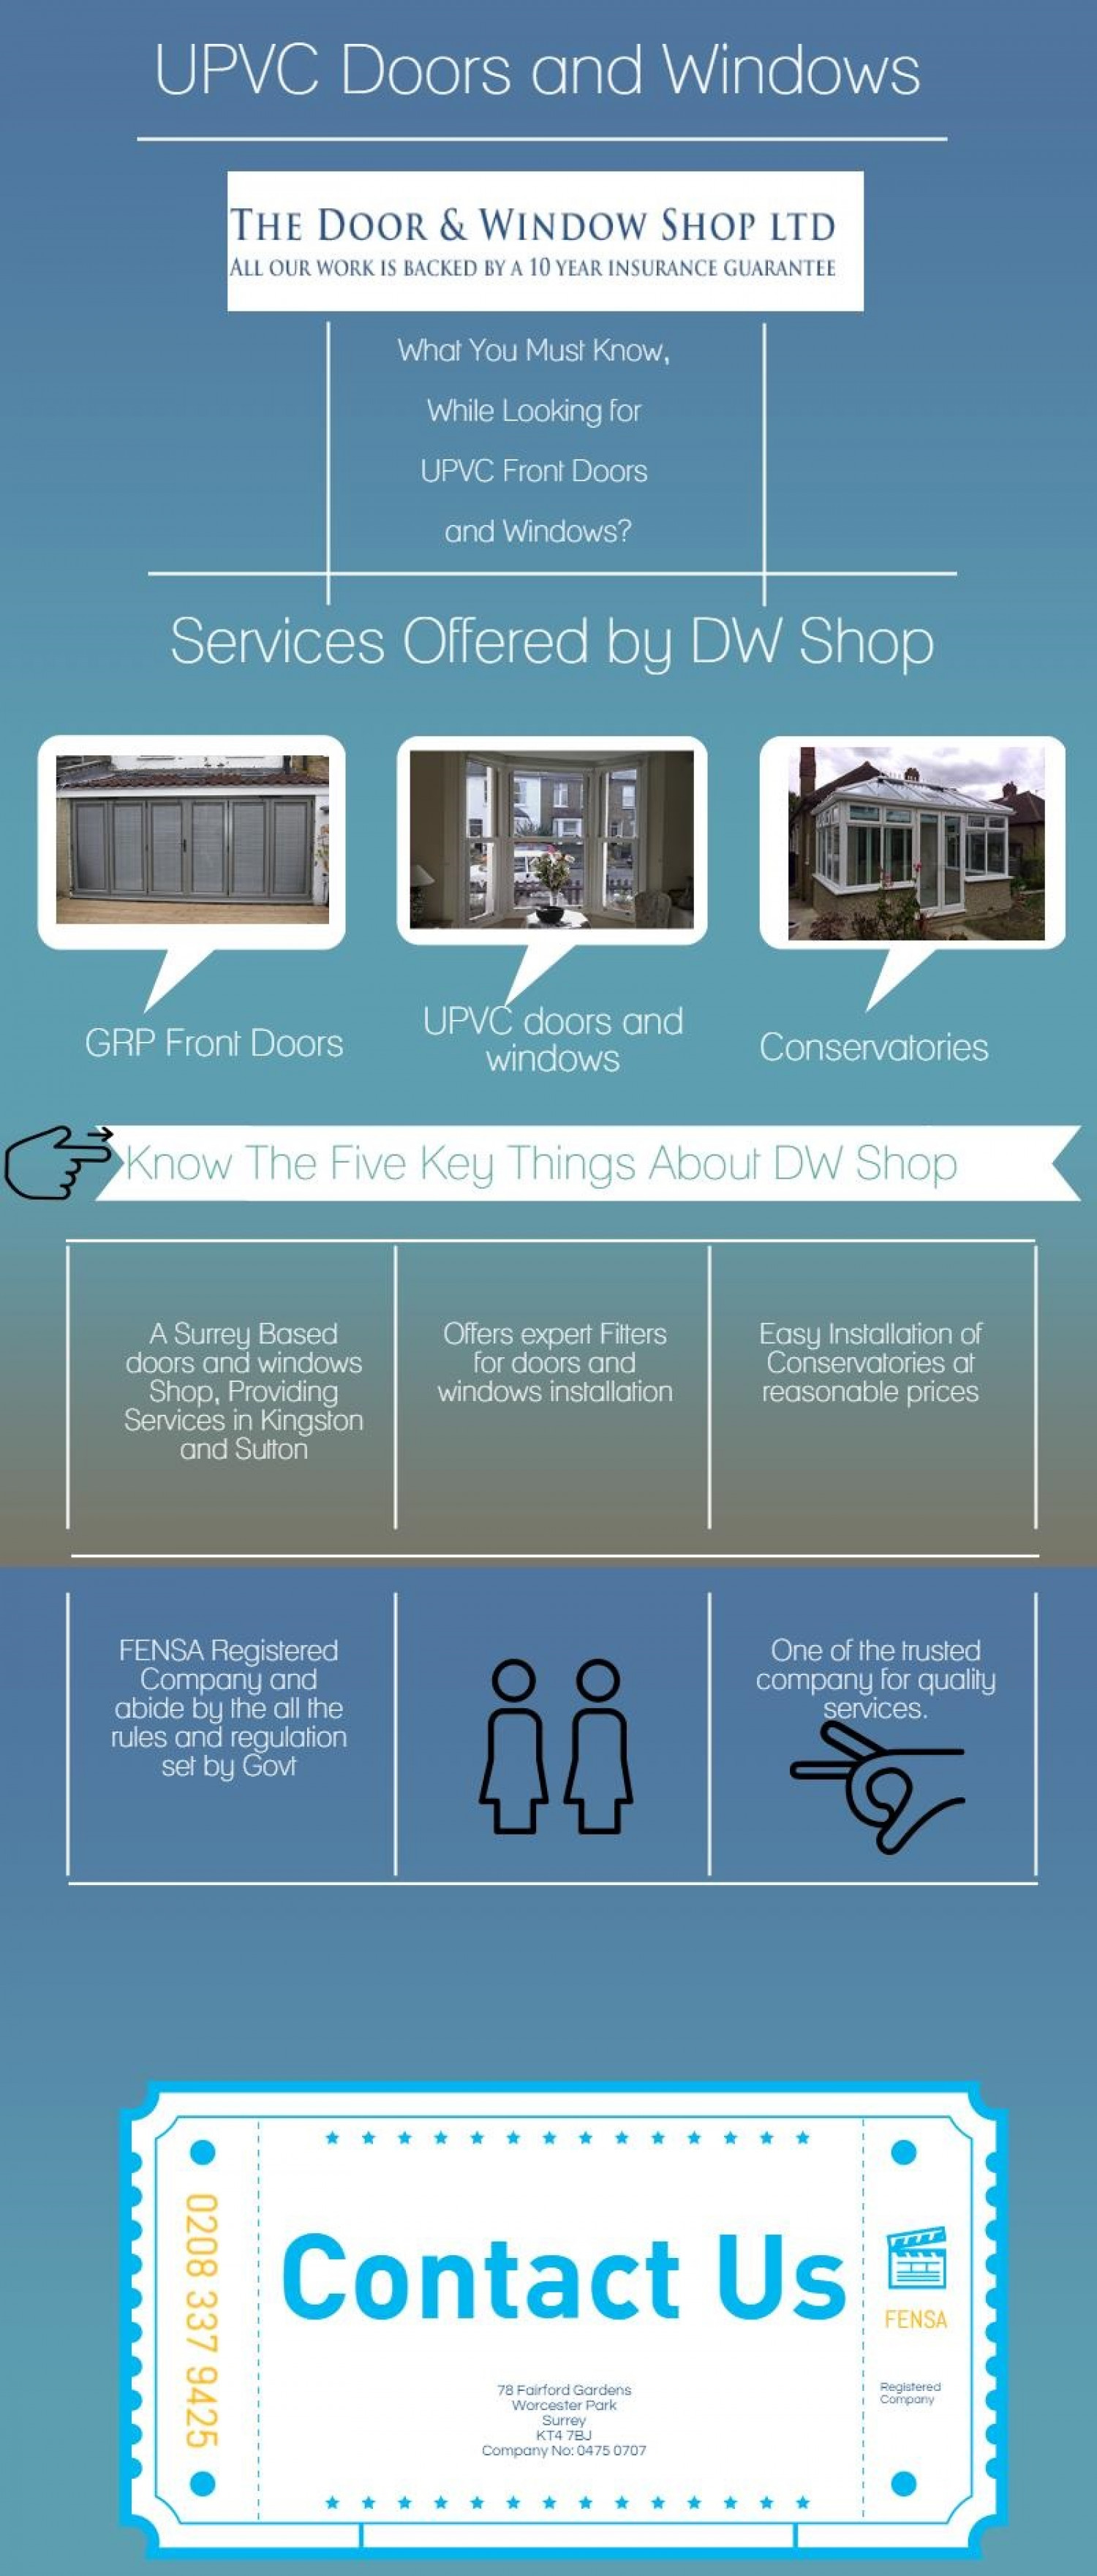 UPVC Doors and Windows in Kingston Sutton Infographic  sc 1 st  Visually & UPVC Doors and Windows in Kingston Sutton | Visual.ly